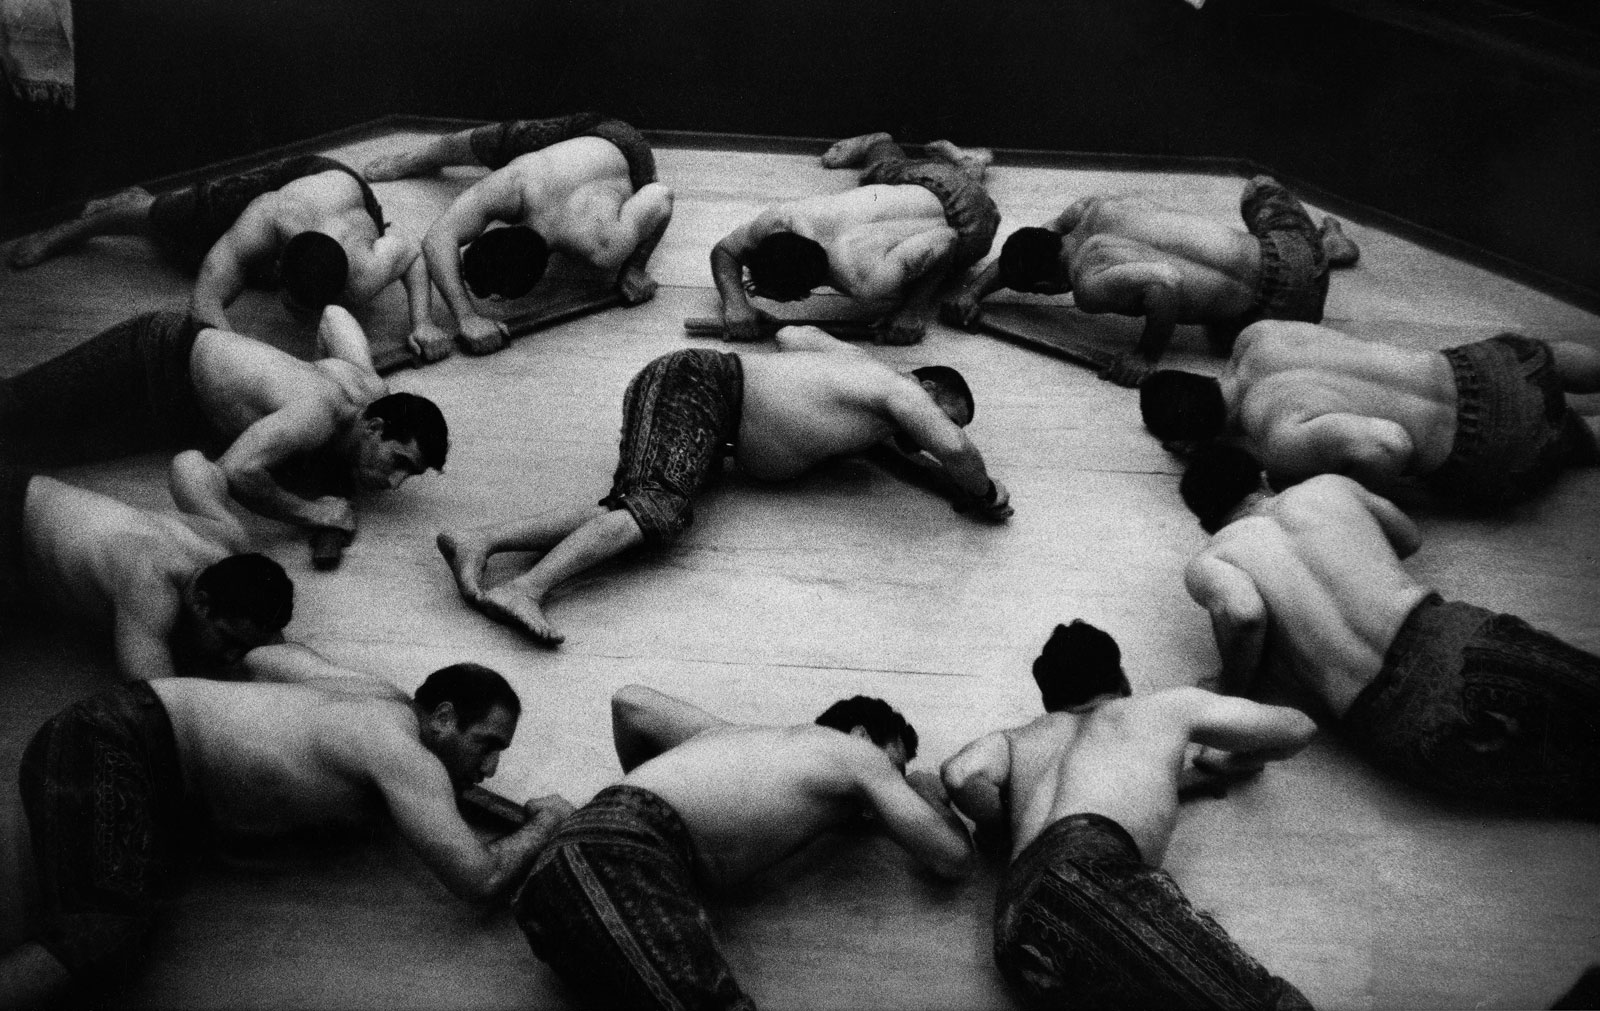 shirtless men lying on the ground form a circle, with one man in the middle, in black and white